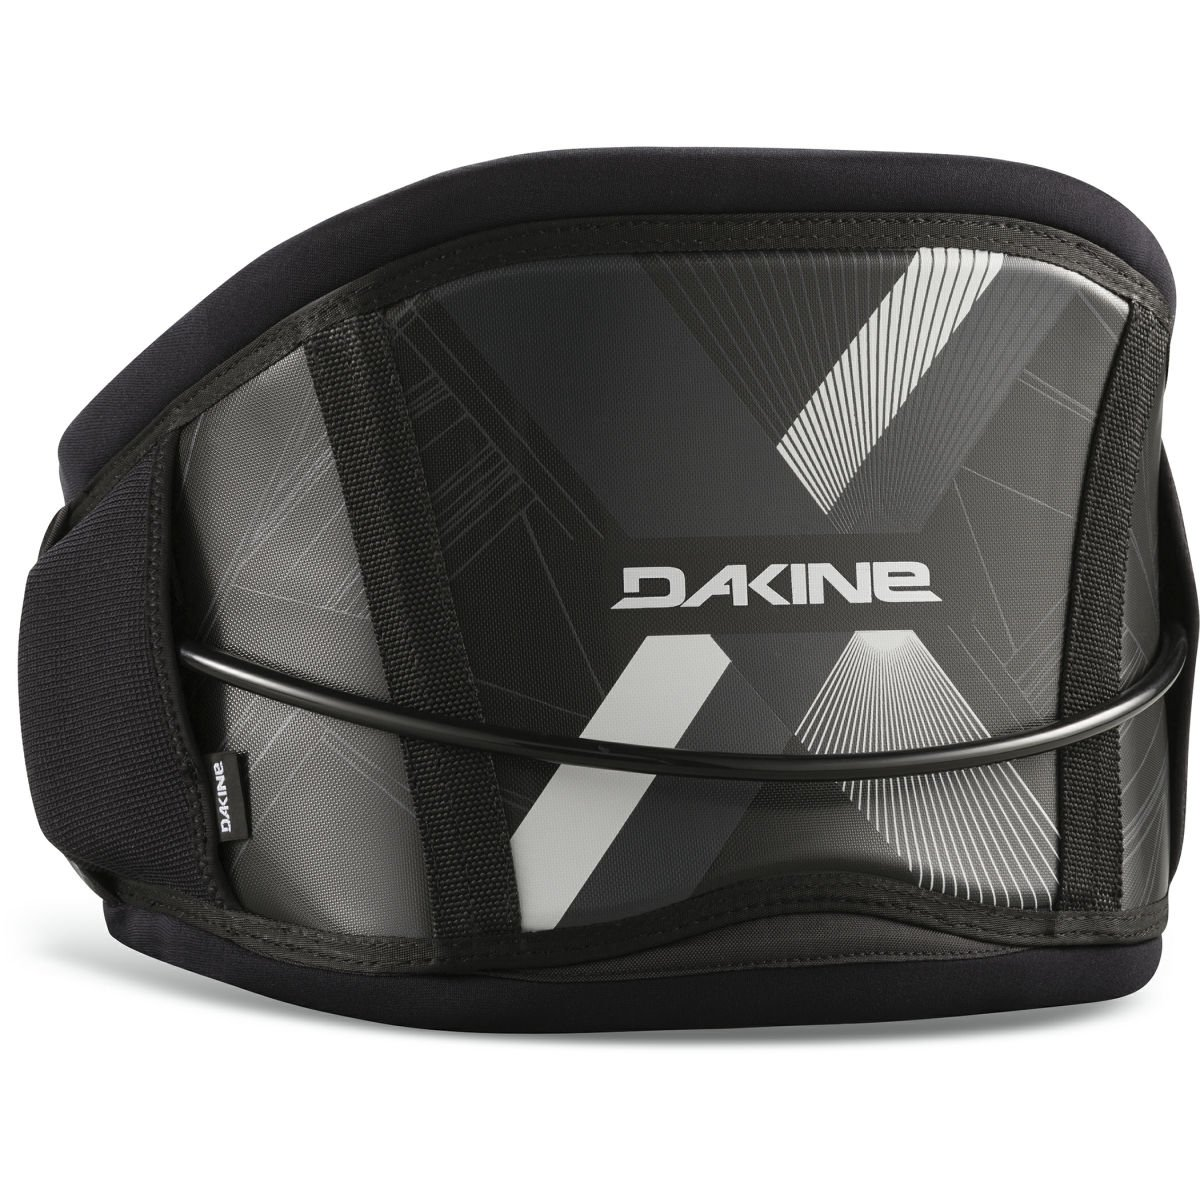 Dakine Men's C-1 Hammerhead Kite Harness, Black, L by Dakine